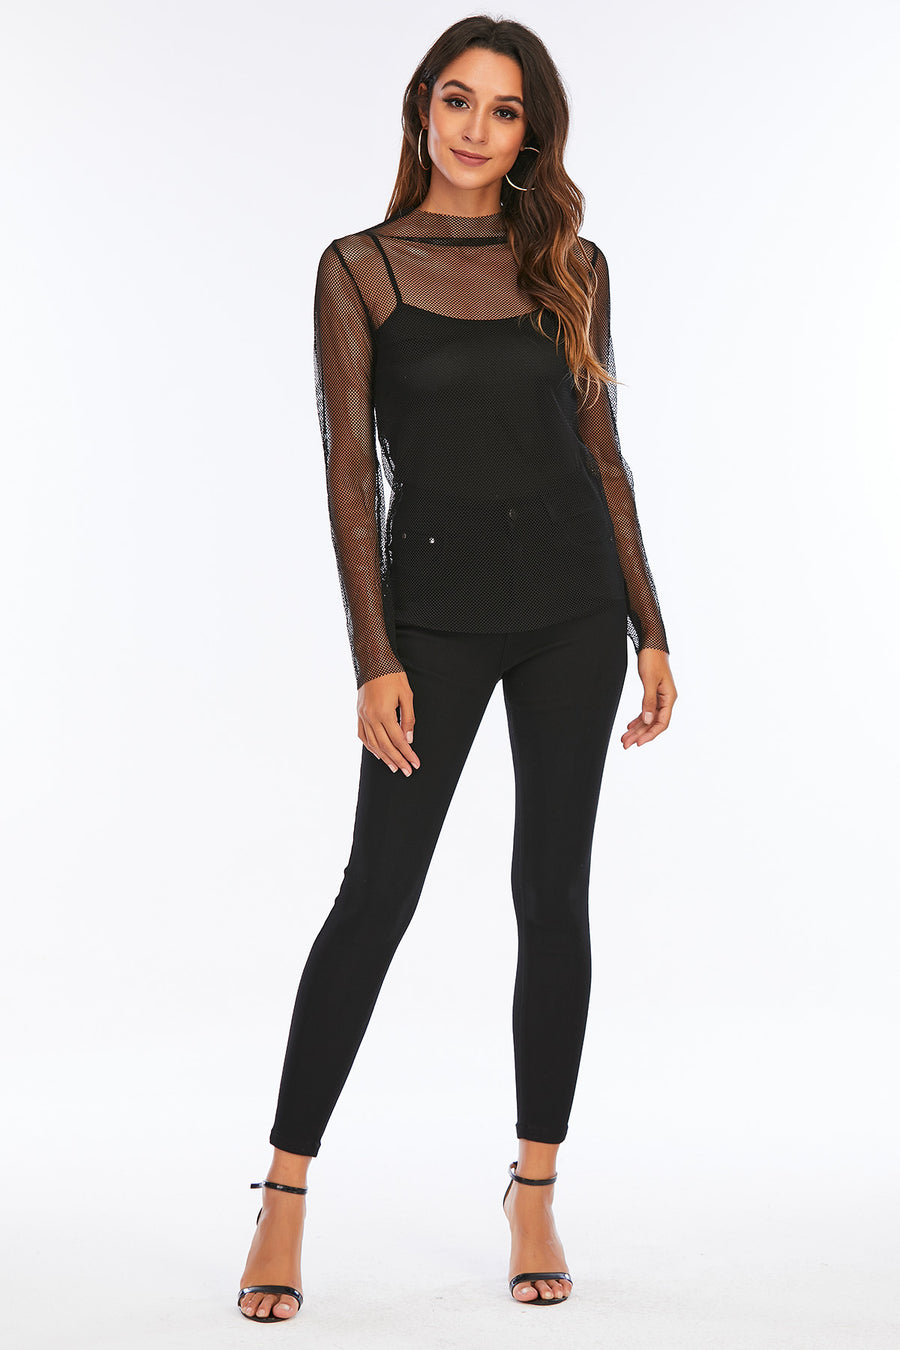 Mantra Pakistan Black Fishnet Top | Western Wear